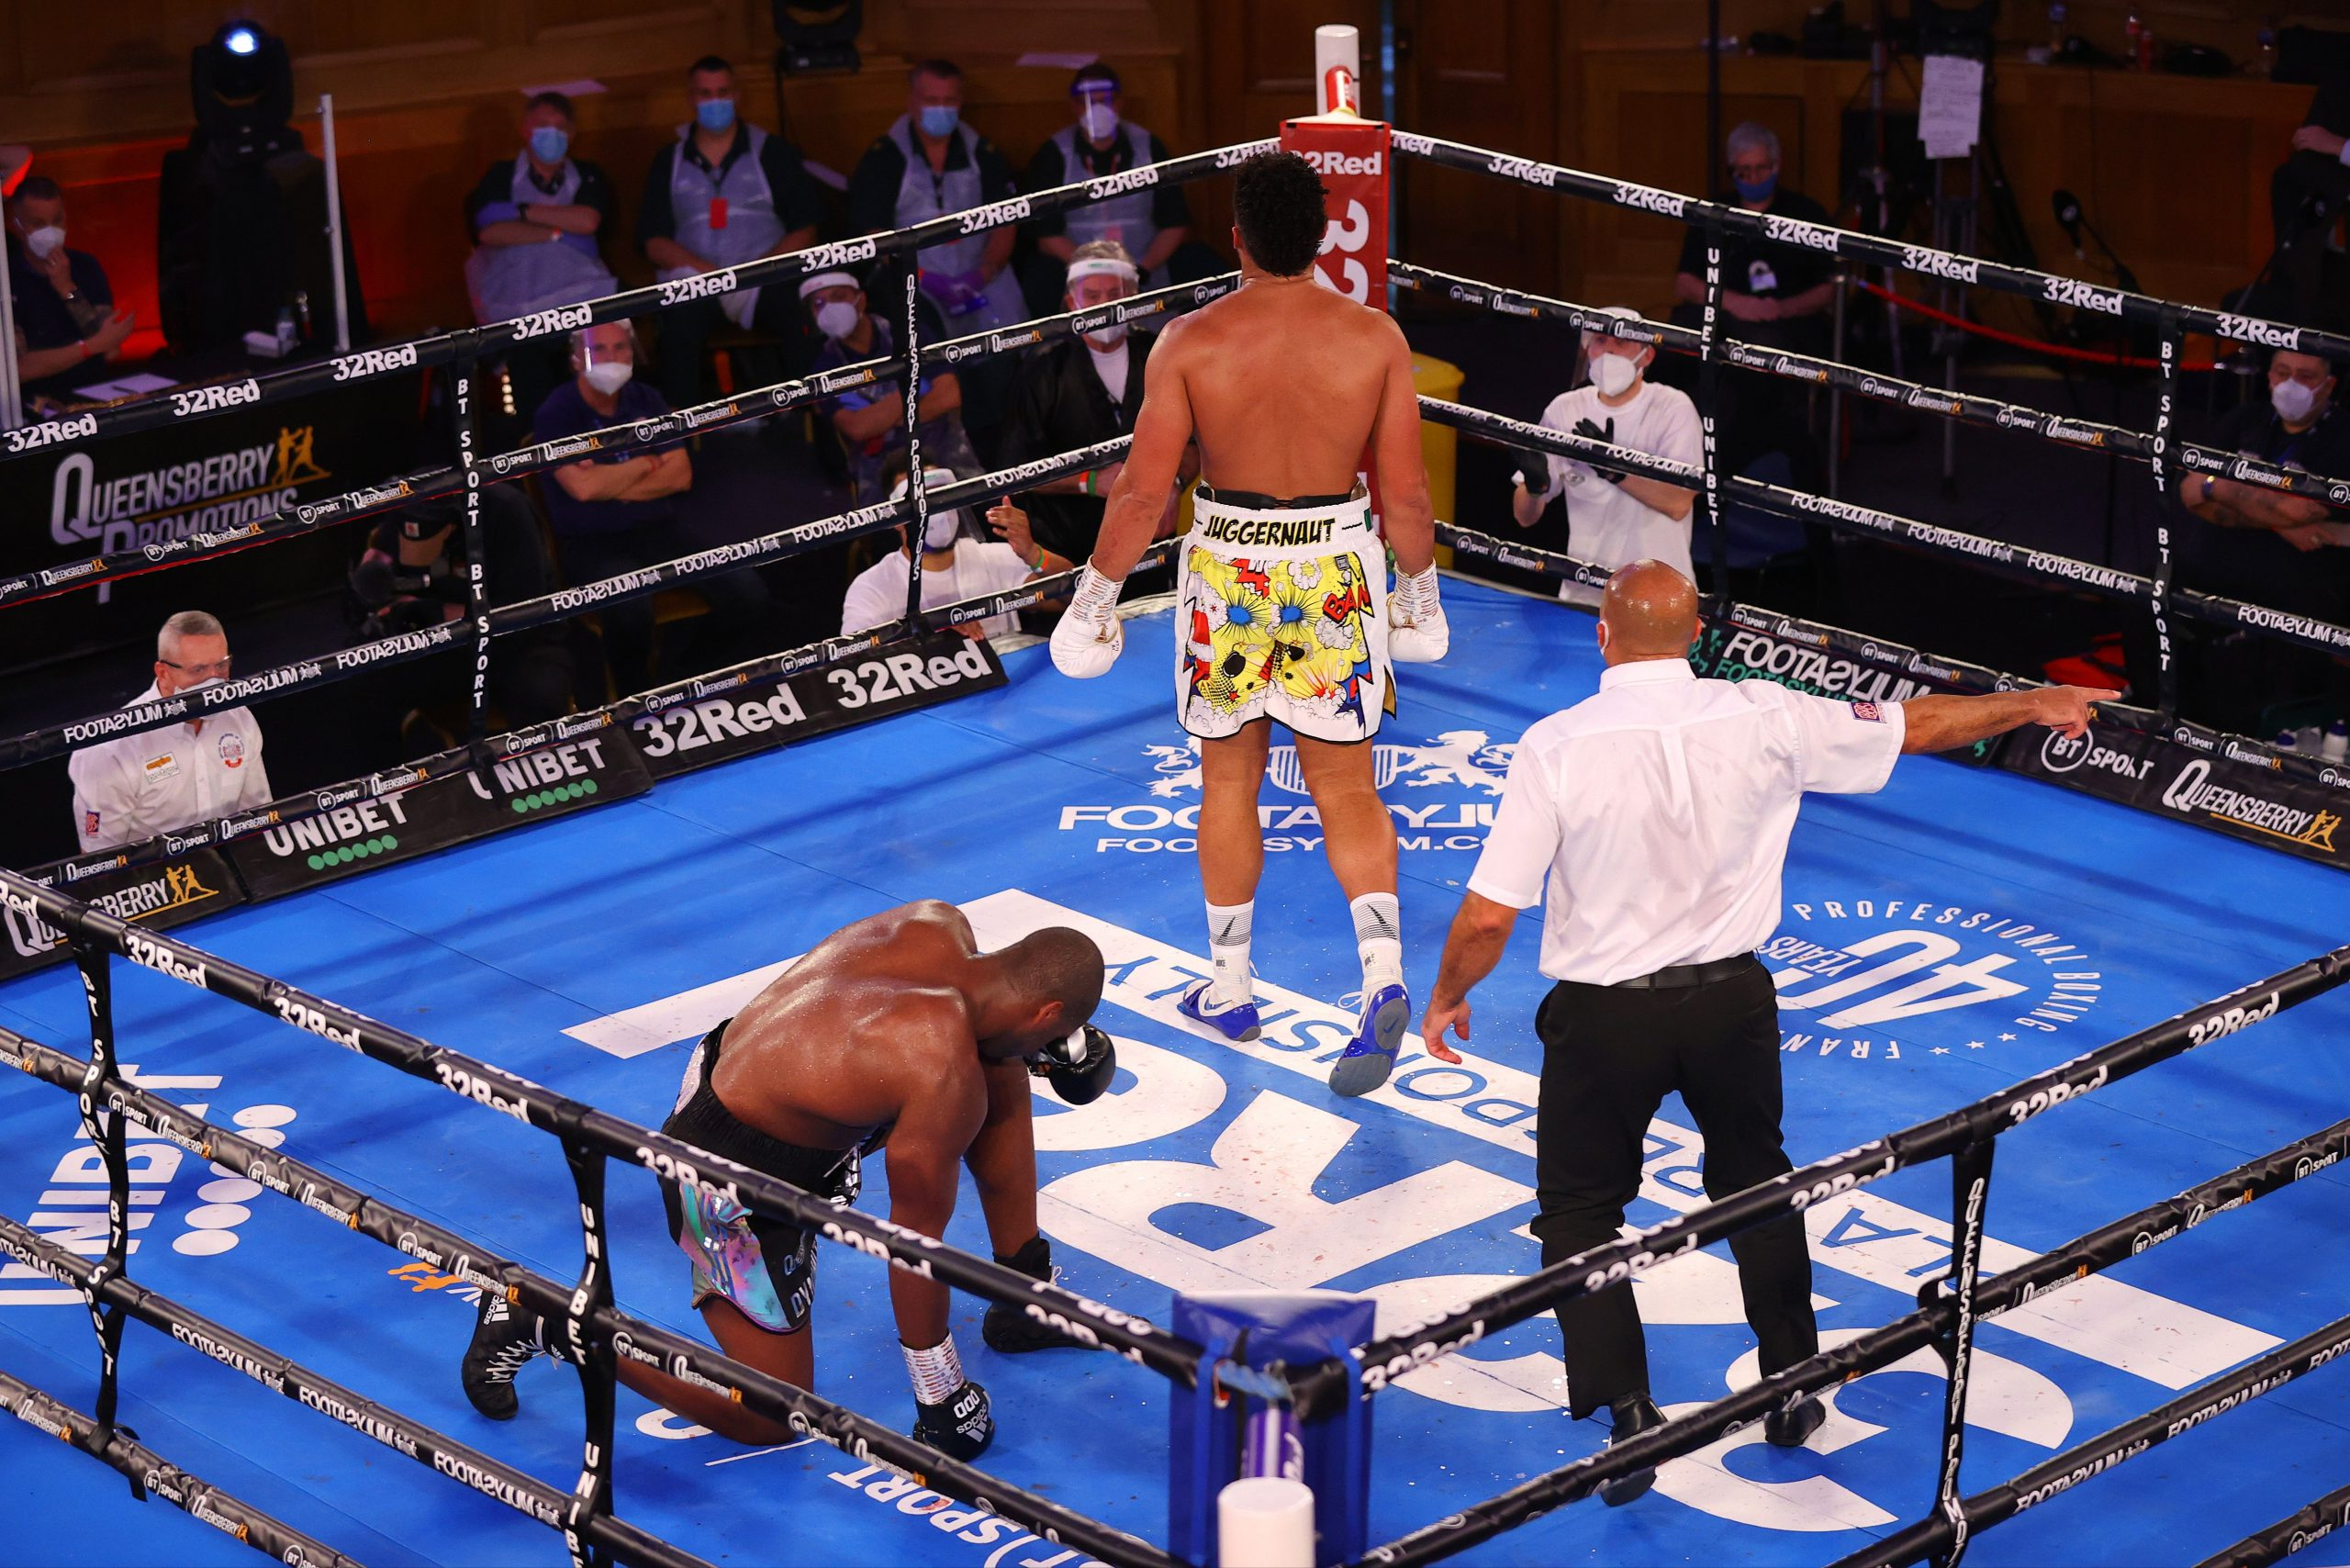 The result of the Daniel Dubois and Joe Joyce match broadcast live!  Latest news: Dubois in hospital;  undercard, Usyk title fight reaction